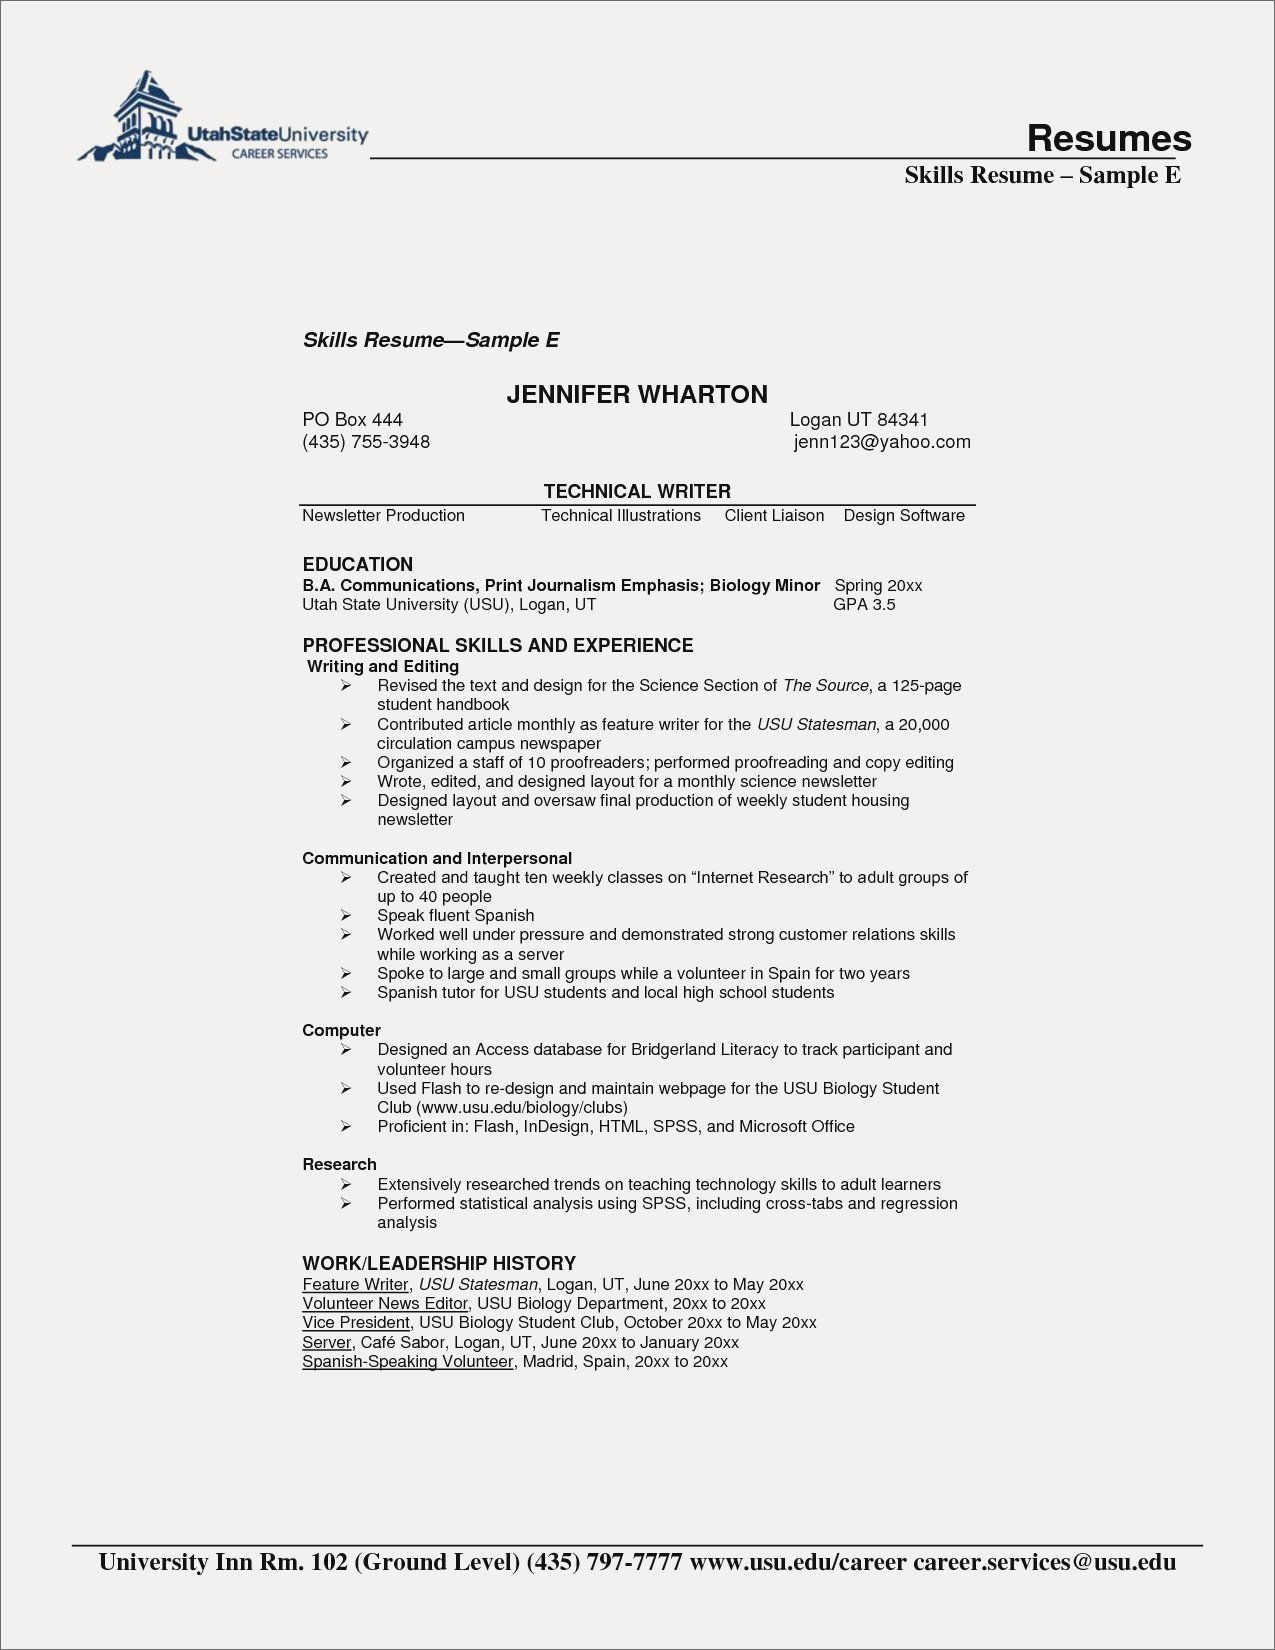 Include Gpa On Resume Resume Examples for High School